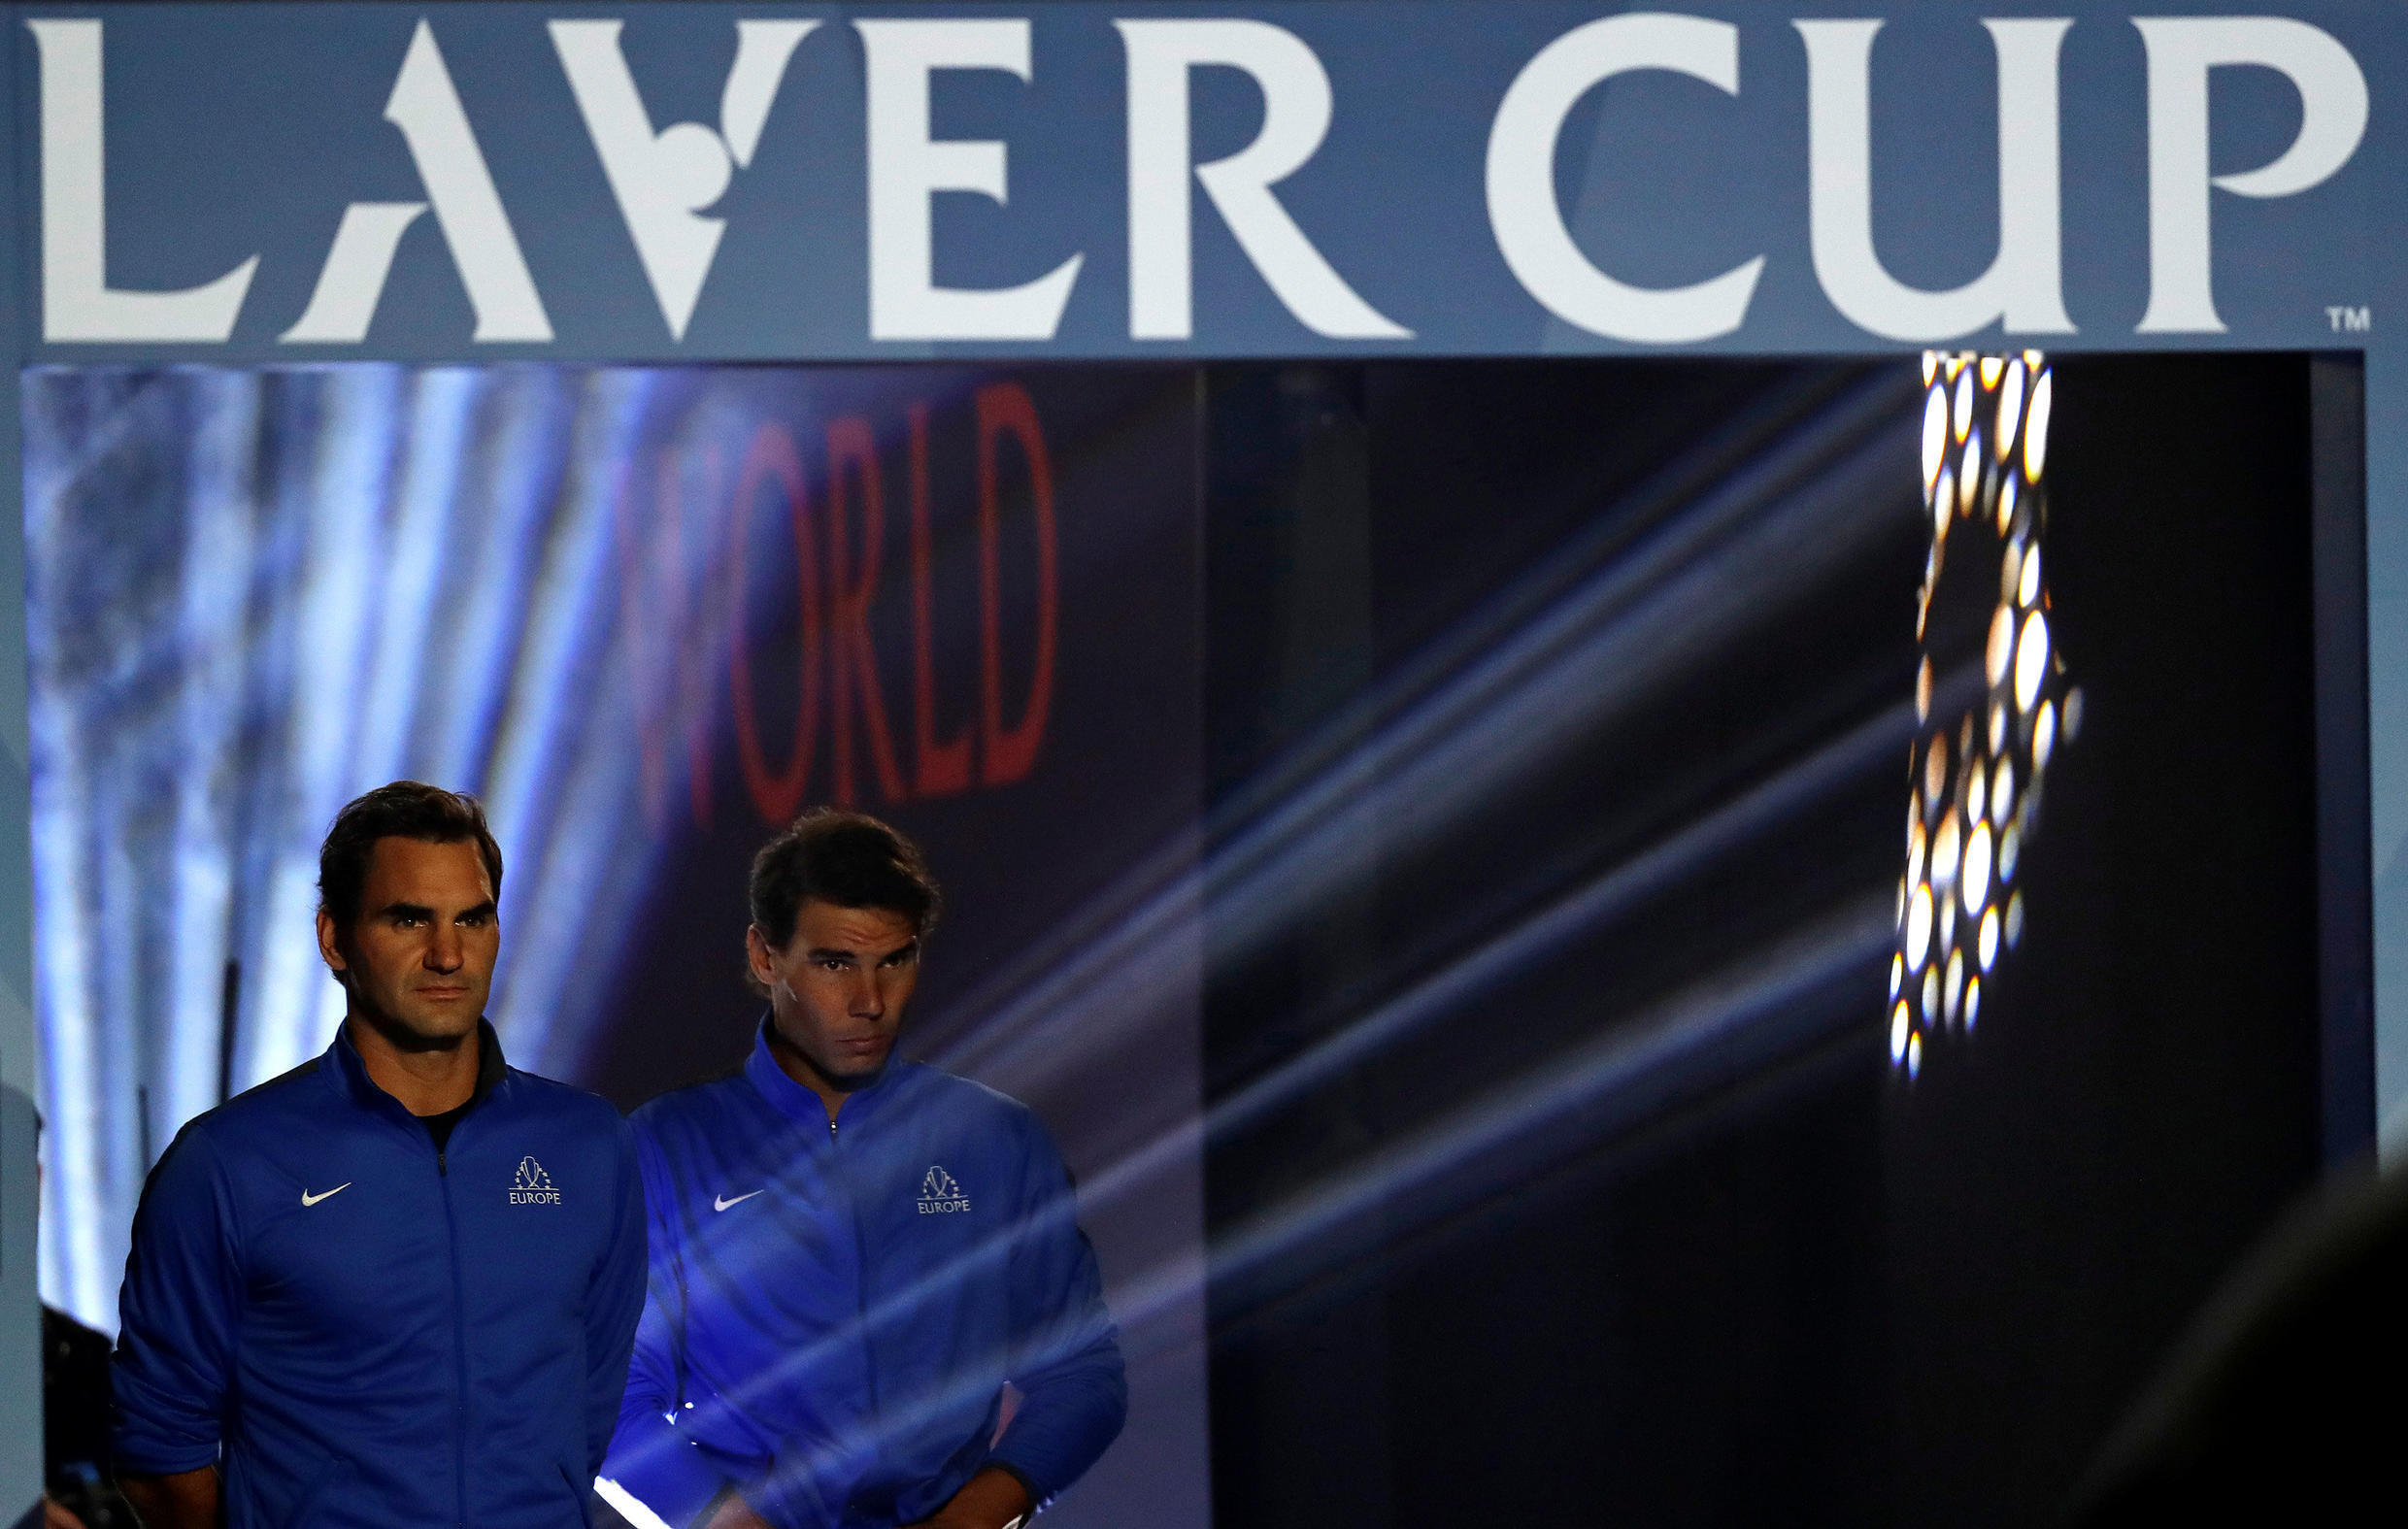 Roger Federer (left) and Rafael Nadal are the top two players in the Europe team playing in the inaugural edition of the Laver Cup in Prague.